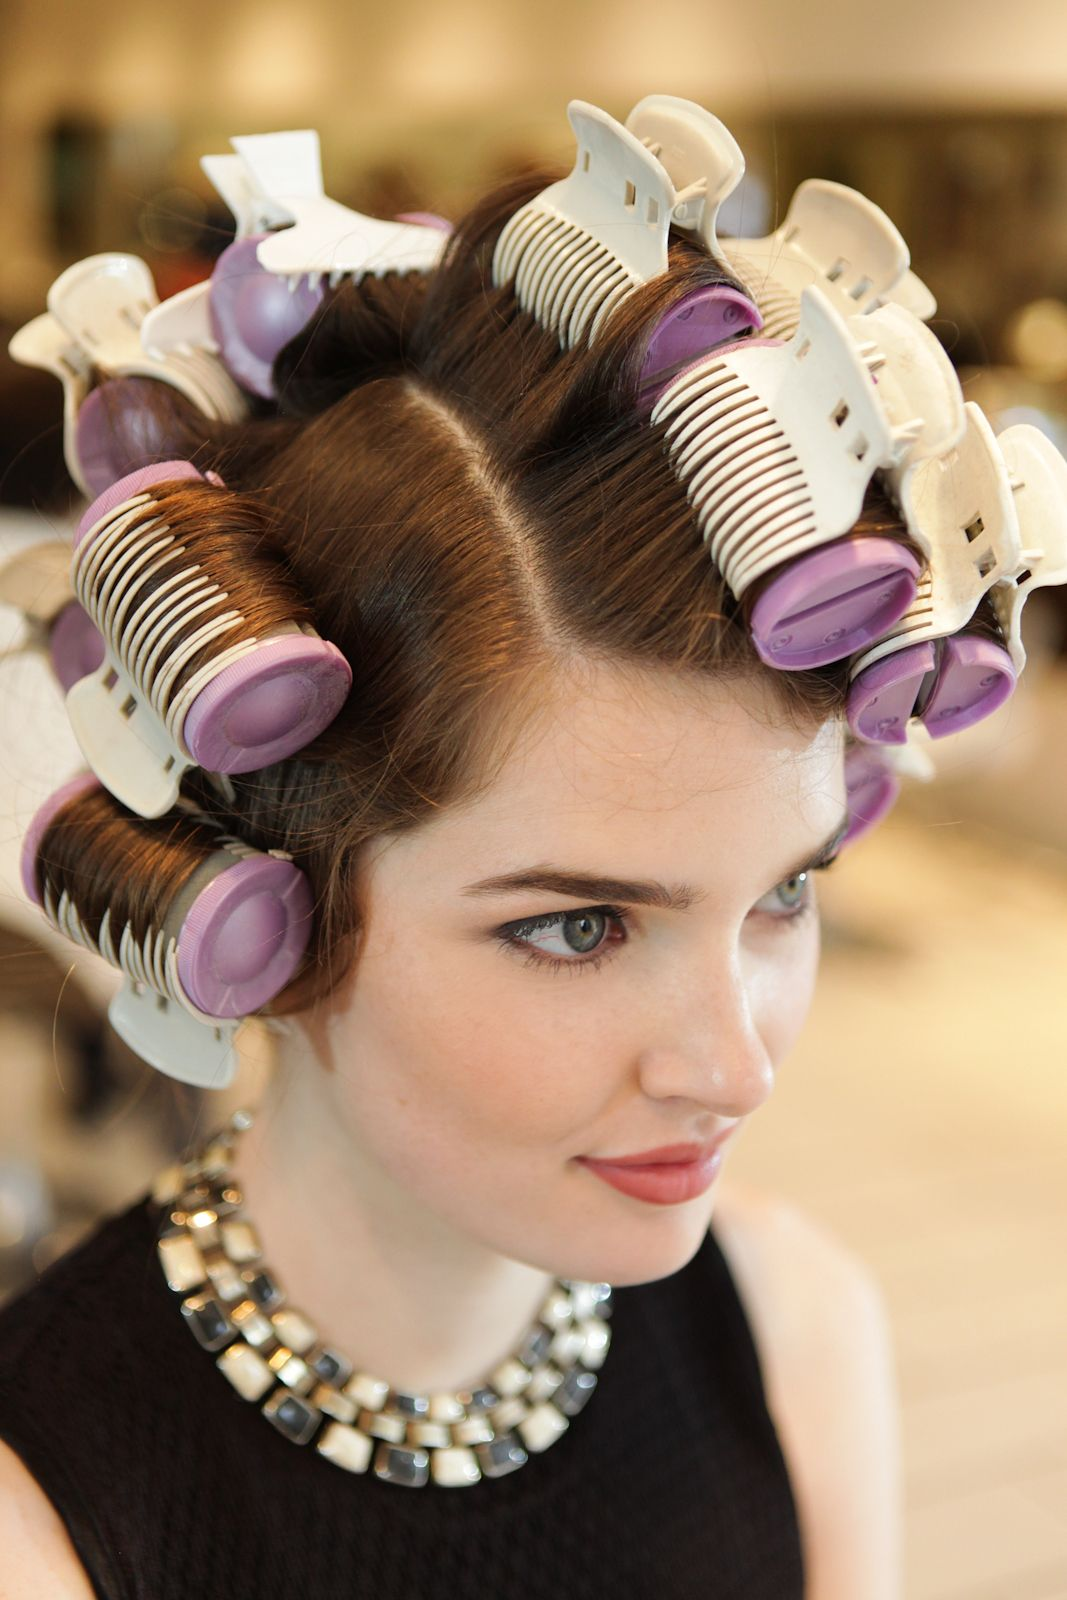 How To Use Hot RollersCute Curly Styles Hot rollers